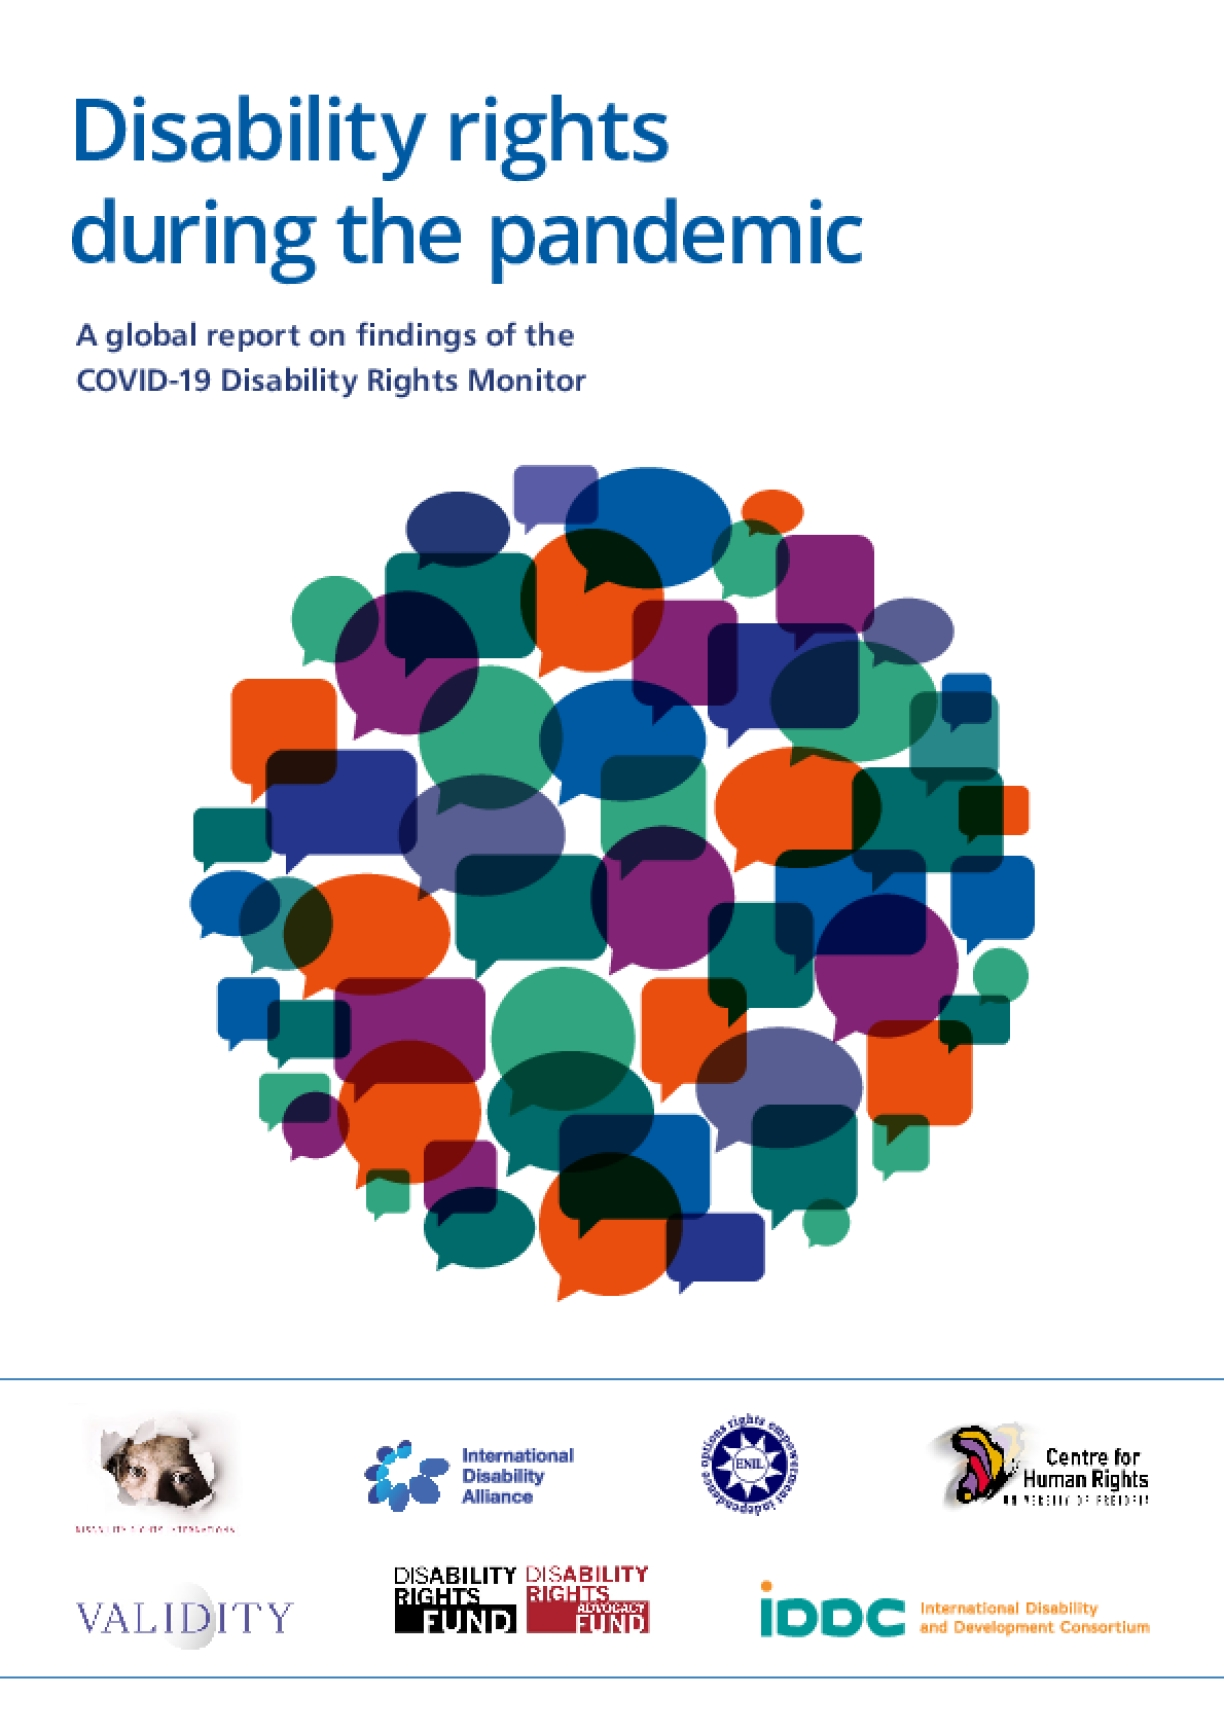 Disability rights during the pandemic: A global report on findings of the COVID-19 Disability Rights Monitor